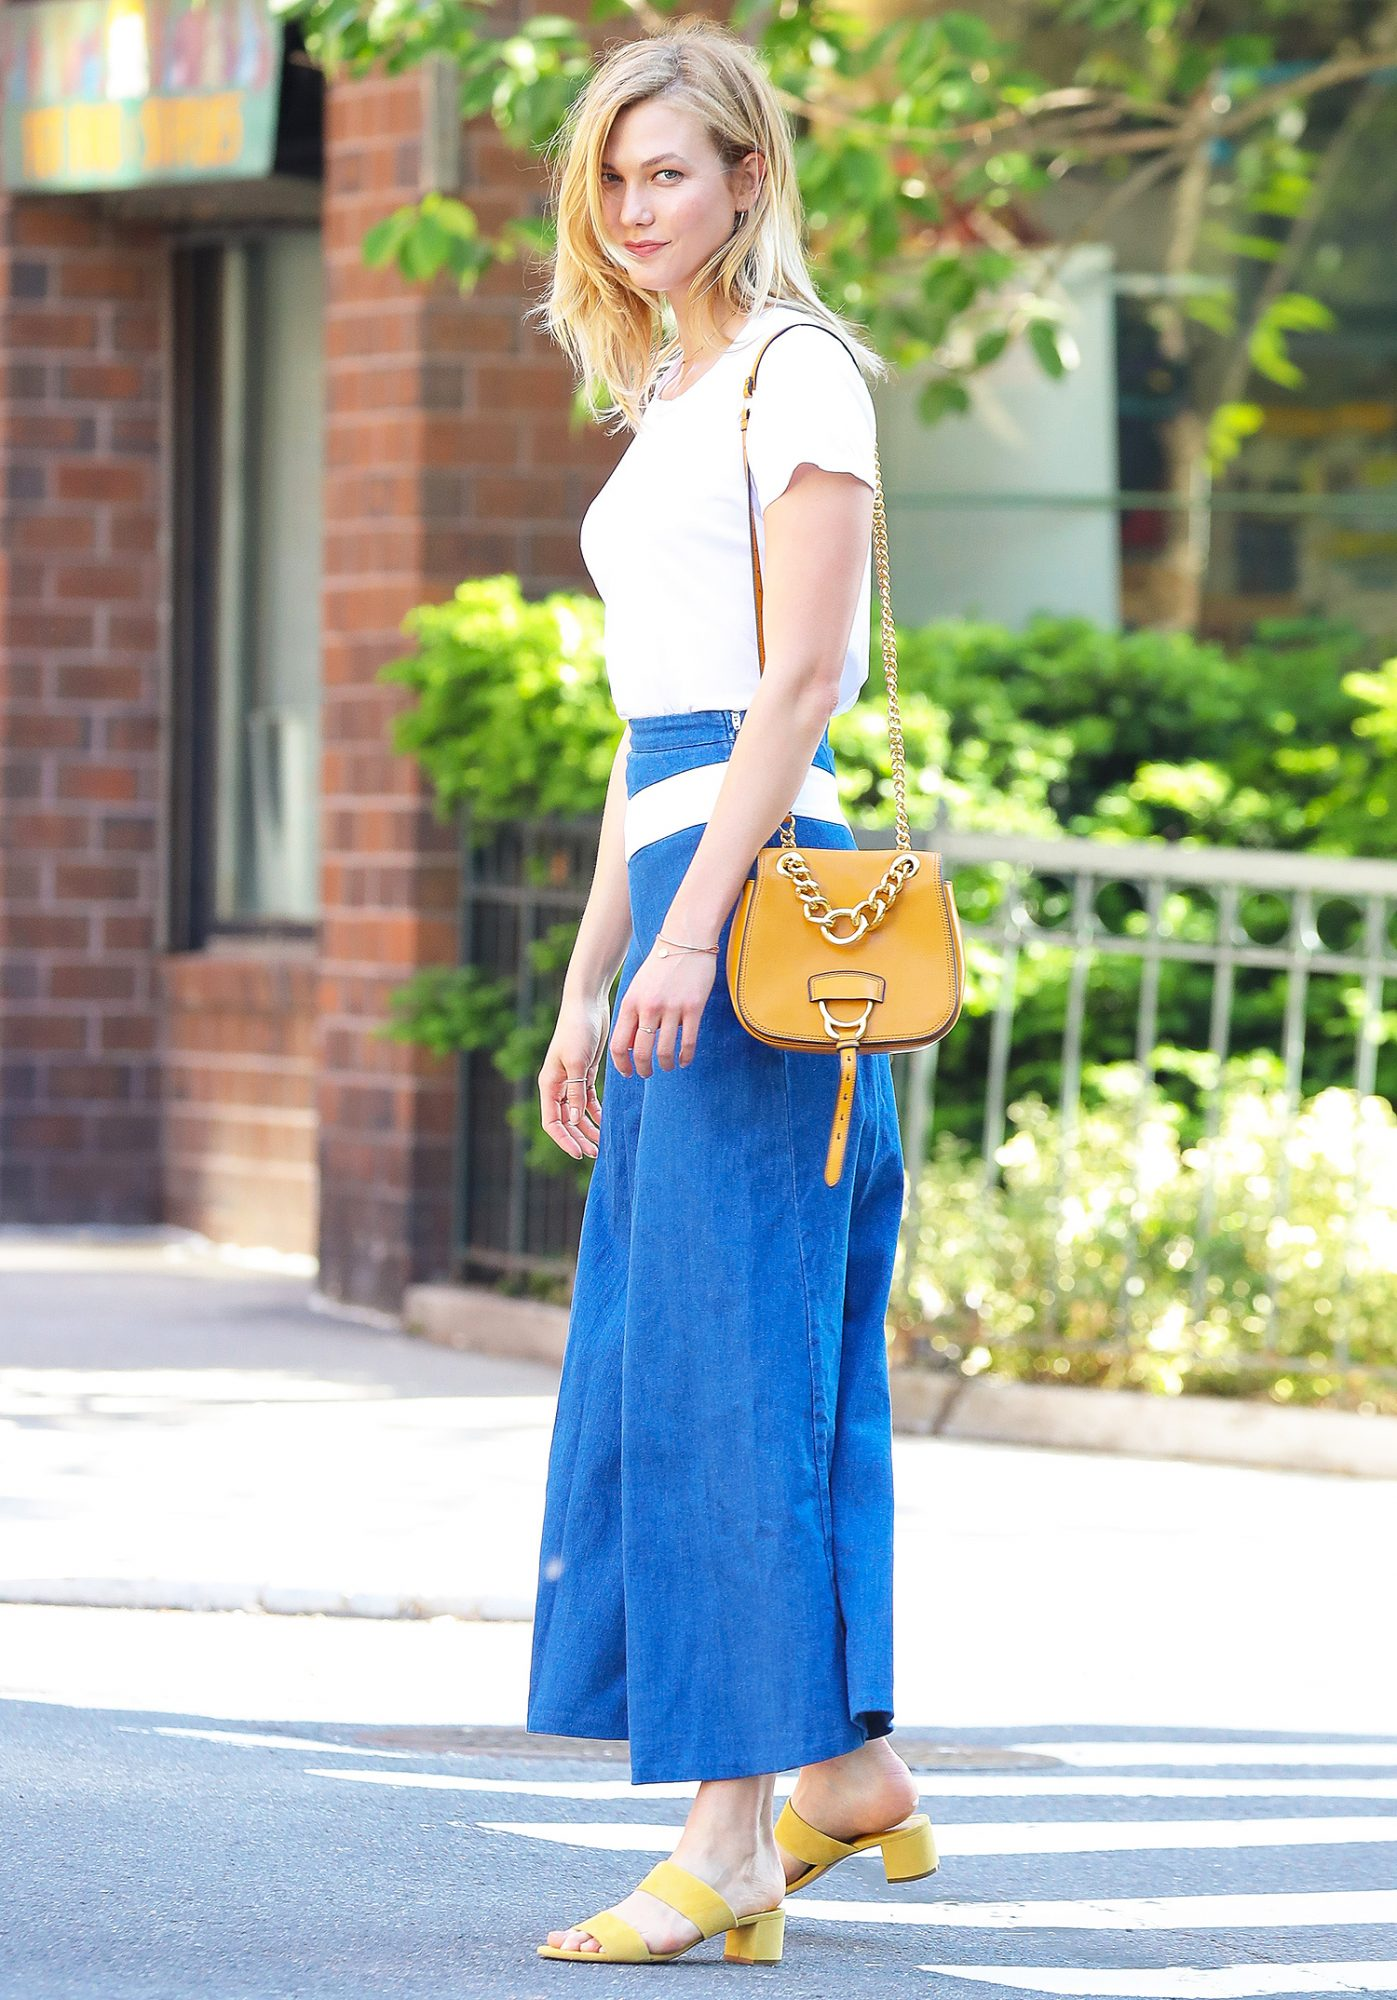 EXCLUSIVE: Karlie Kloss steps out wearing denim sailor pants and yellow accessories in New York City